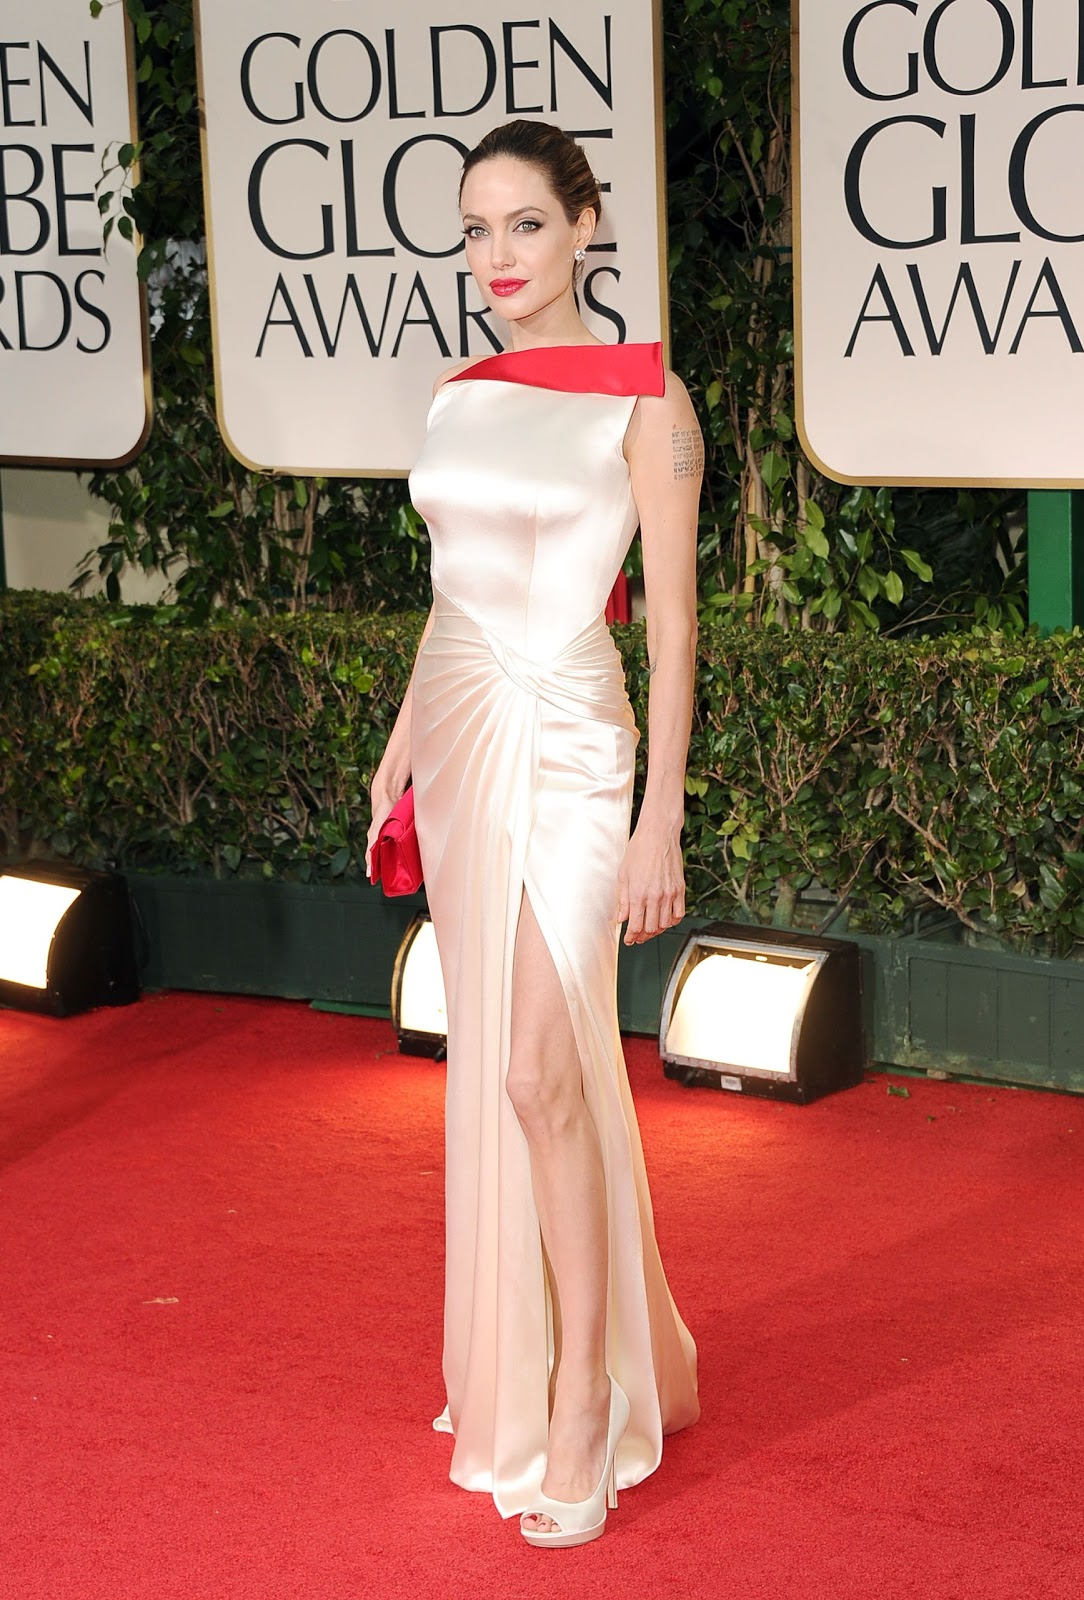 http://3.bp.blogspot.com/-Wa2fjLKRlPo/TxSnQ6oYdDI/AAAAAAAAADs/PsSMsf8I7z8/s1600/angelina_jolie_angelina_jolie_69th_annual_golden_globe_awards_in_beverly_hills_15_january_2012__ODPovsl.jpg